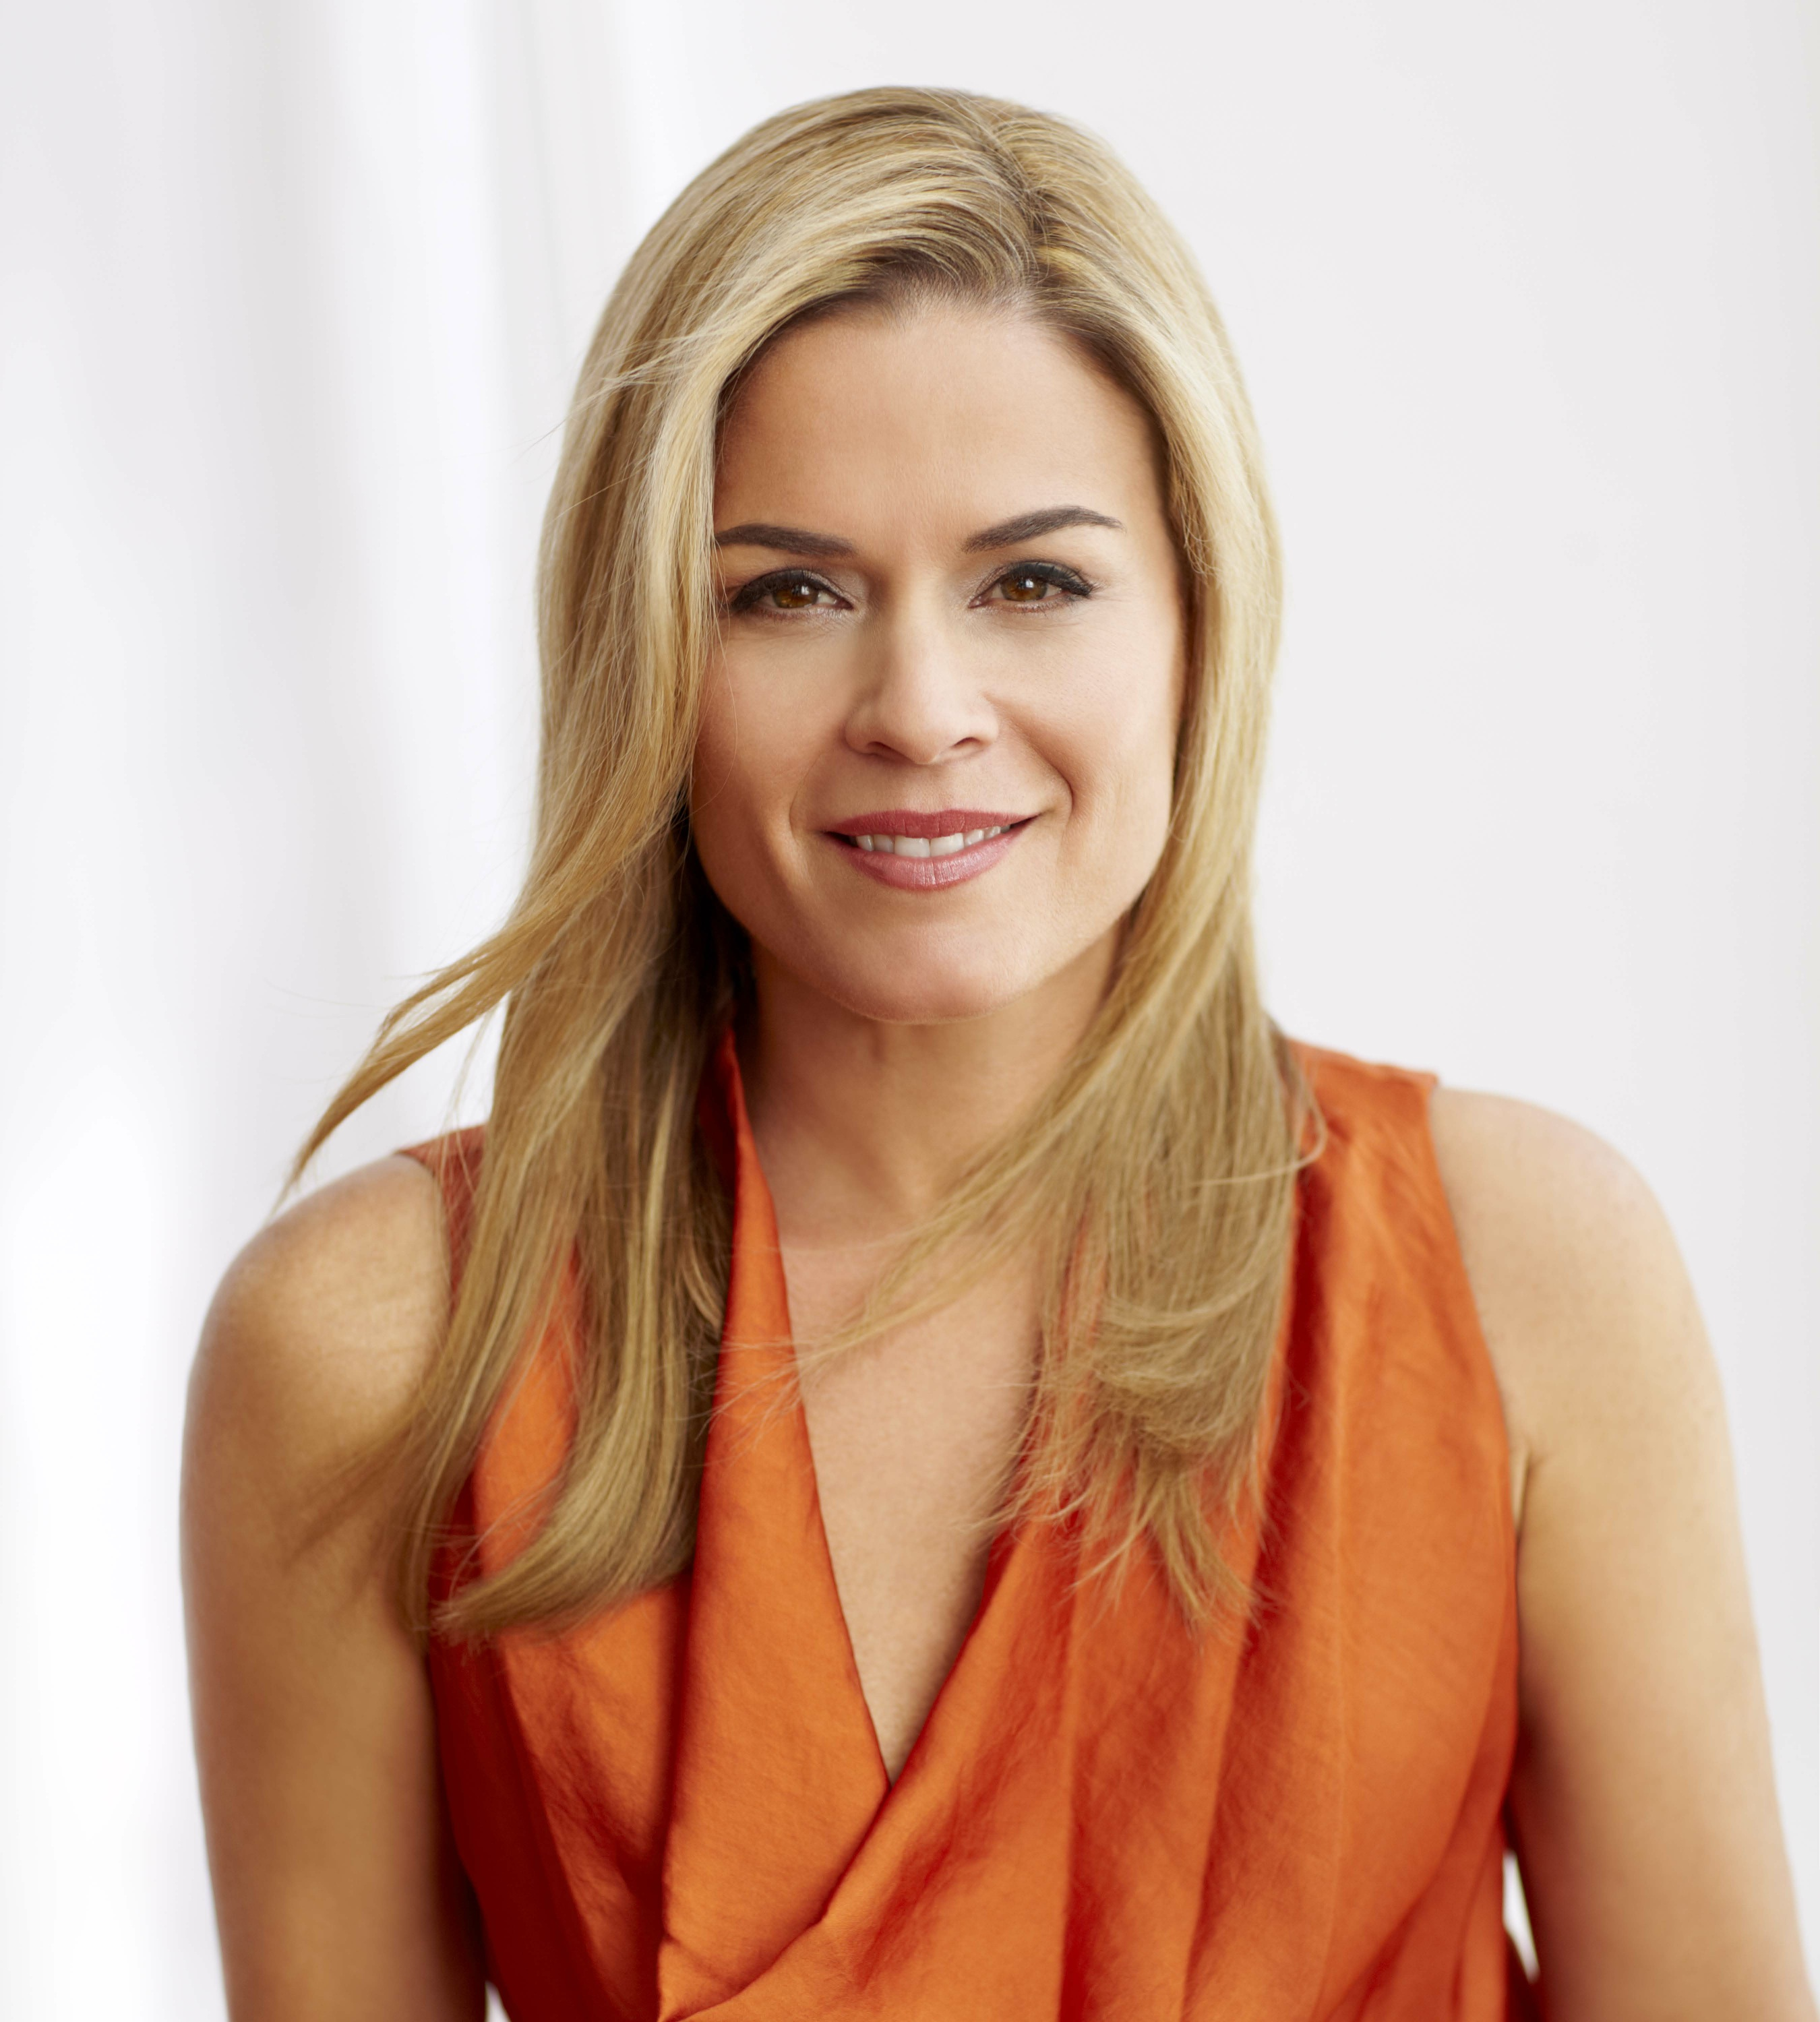 Cat Cora earned a  million dollar salary - leaving the net worth at 4.5 million in 2017